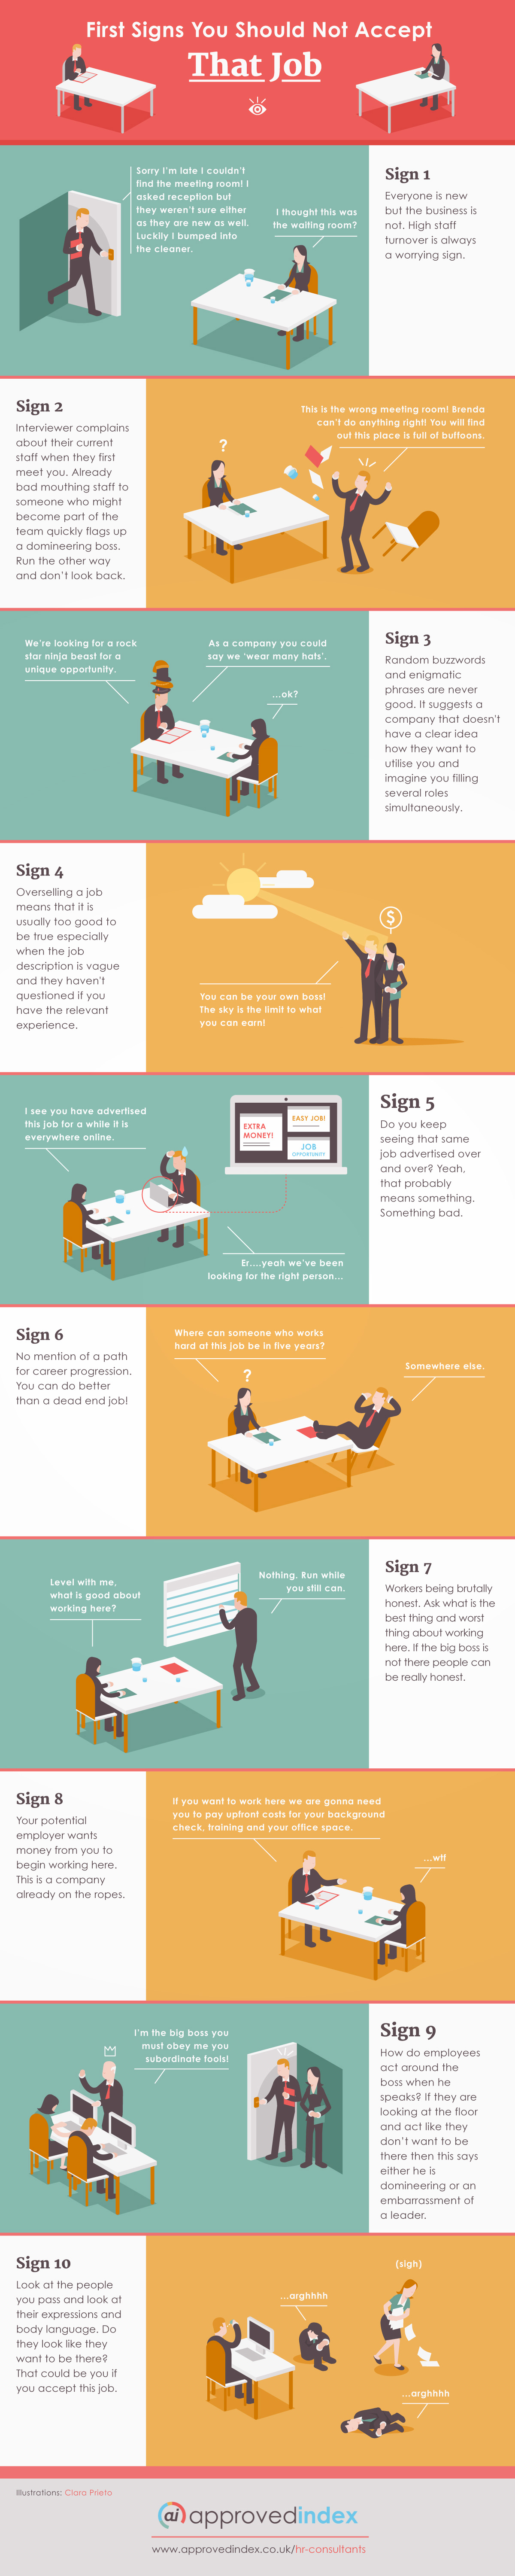 10 warning signs you should not accept that job infographic eynsatg